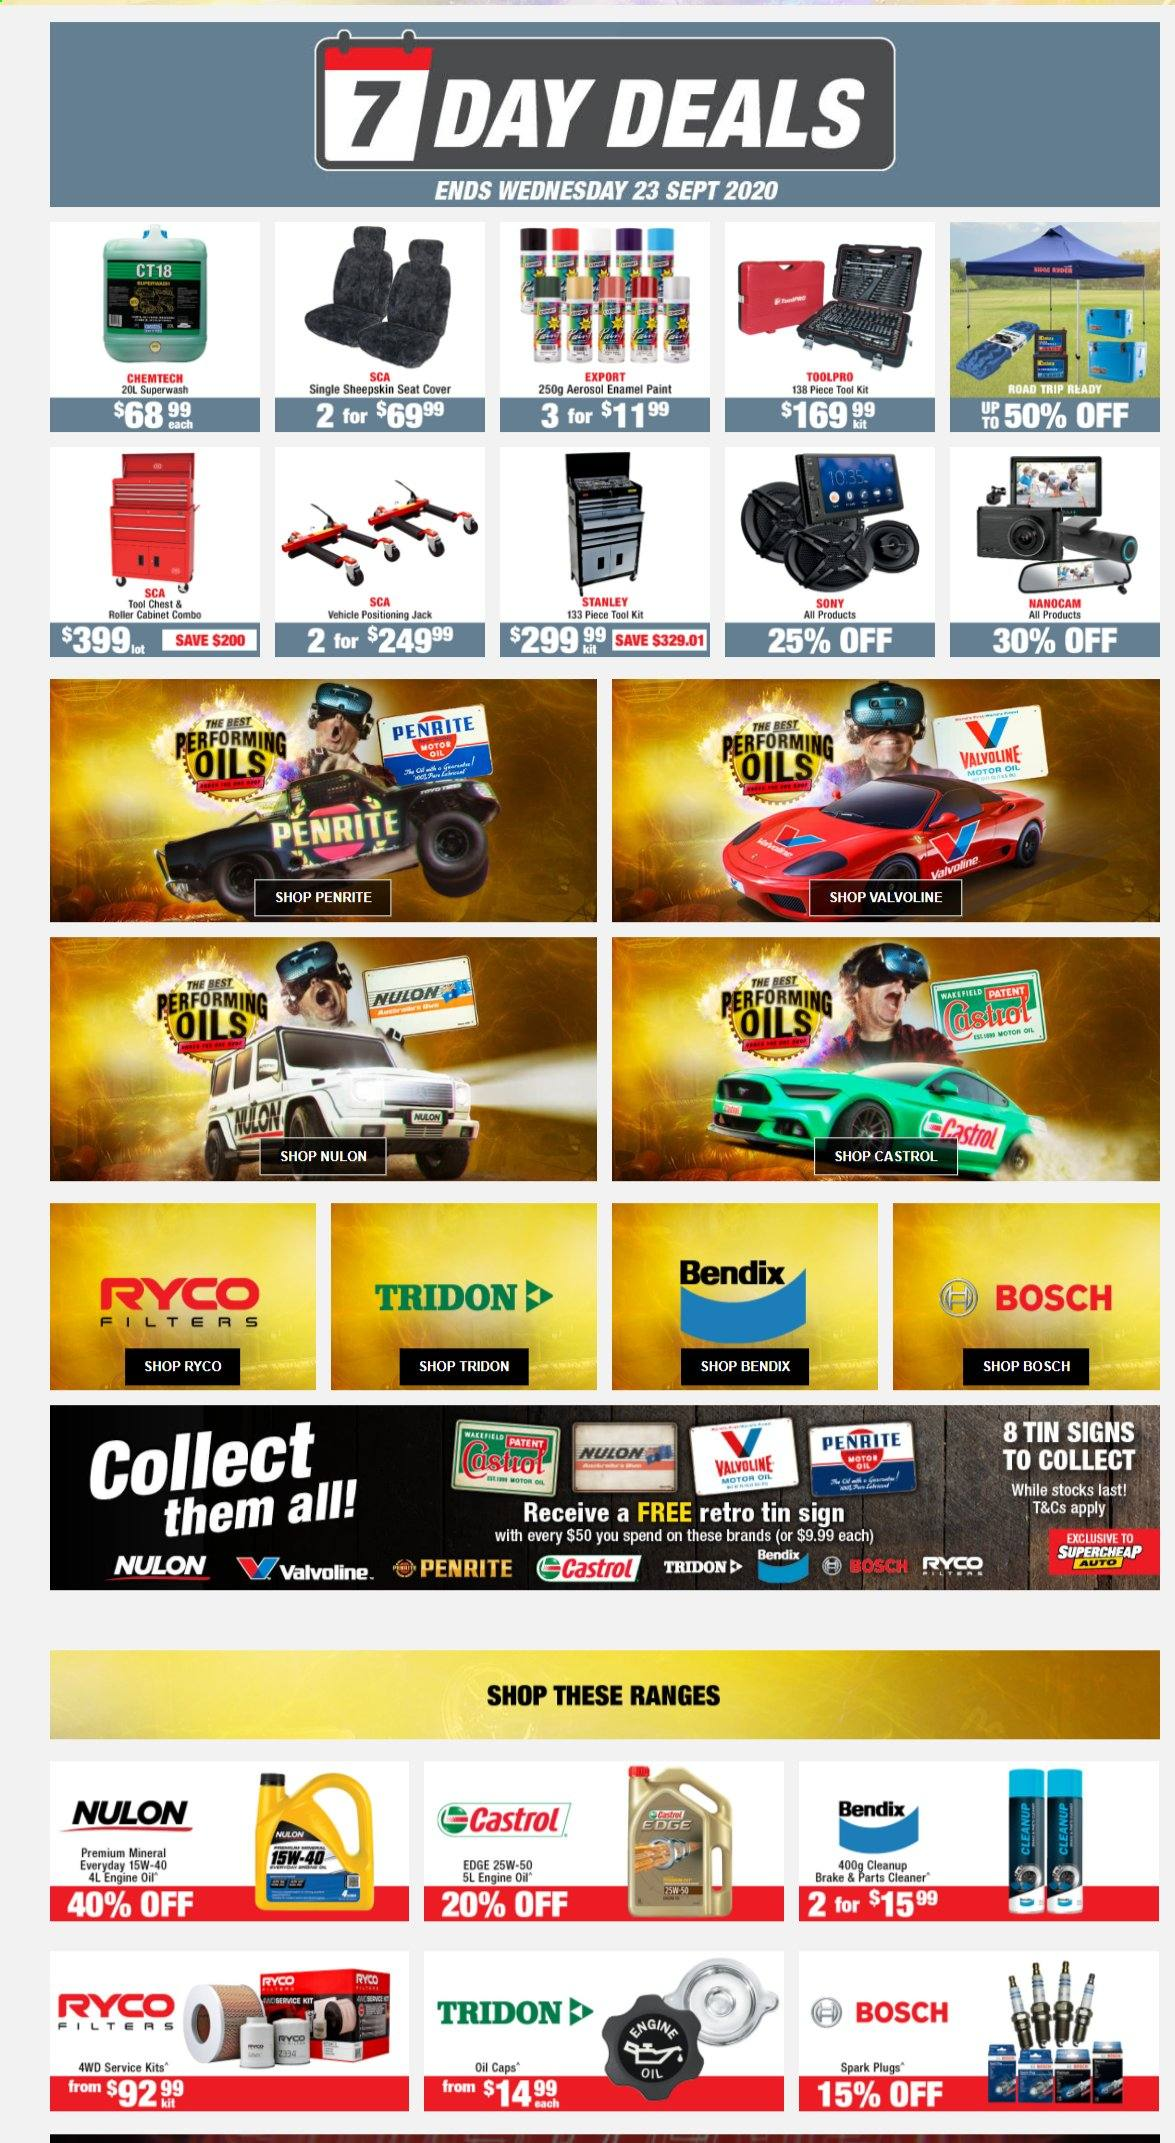 SuperCheap Auto mailer - 20.09.2020 - 23.09.2020 - Sales products - bosch, cabinet, motor oil, seat cover, sony, spark plugs, stanley, roller, cleaner, vehicle, paint, tools. Page 1.